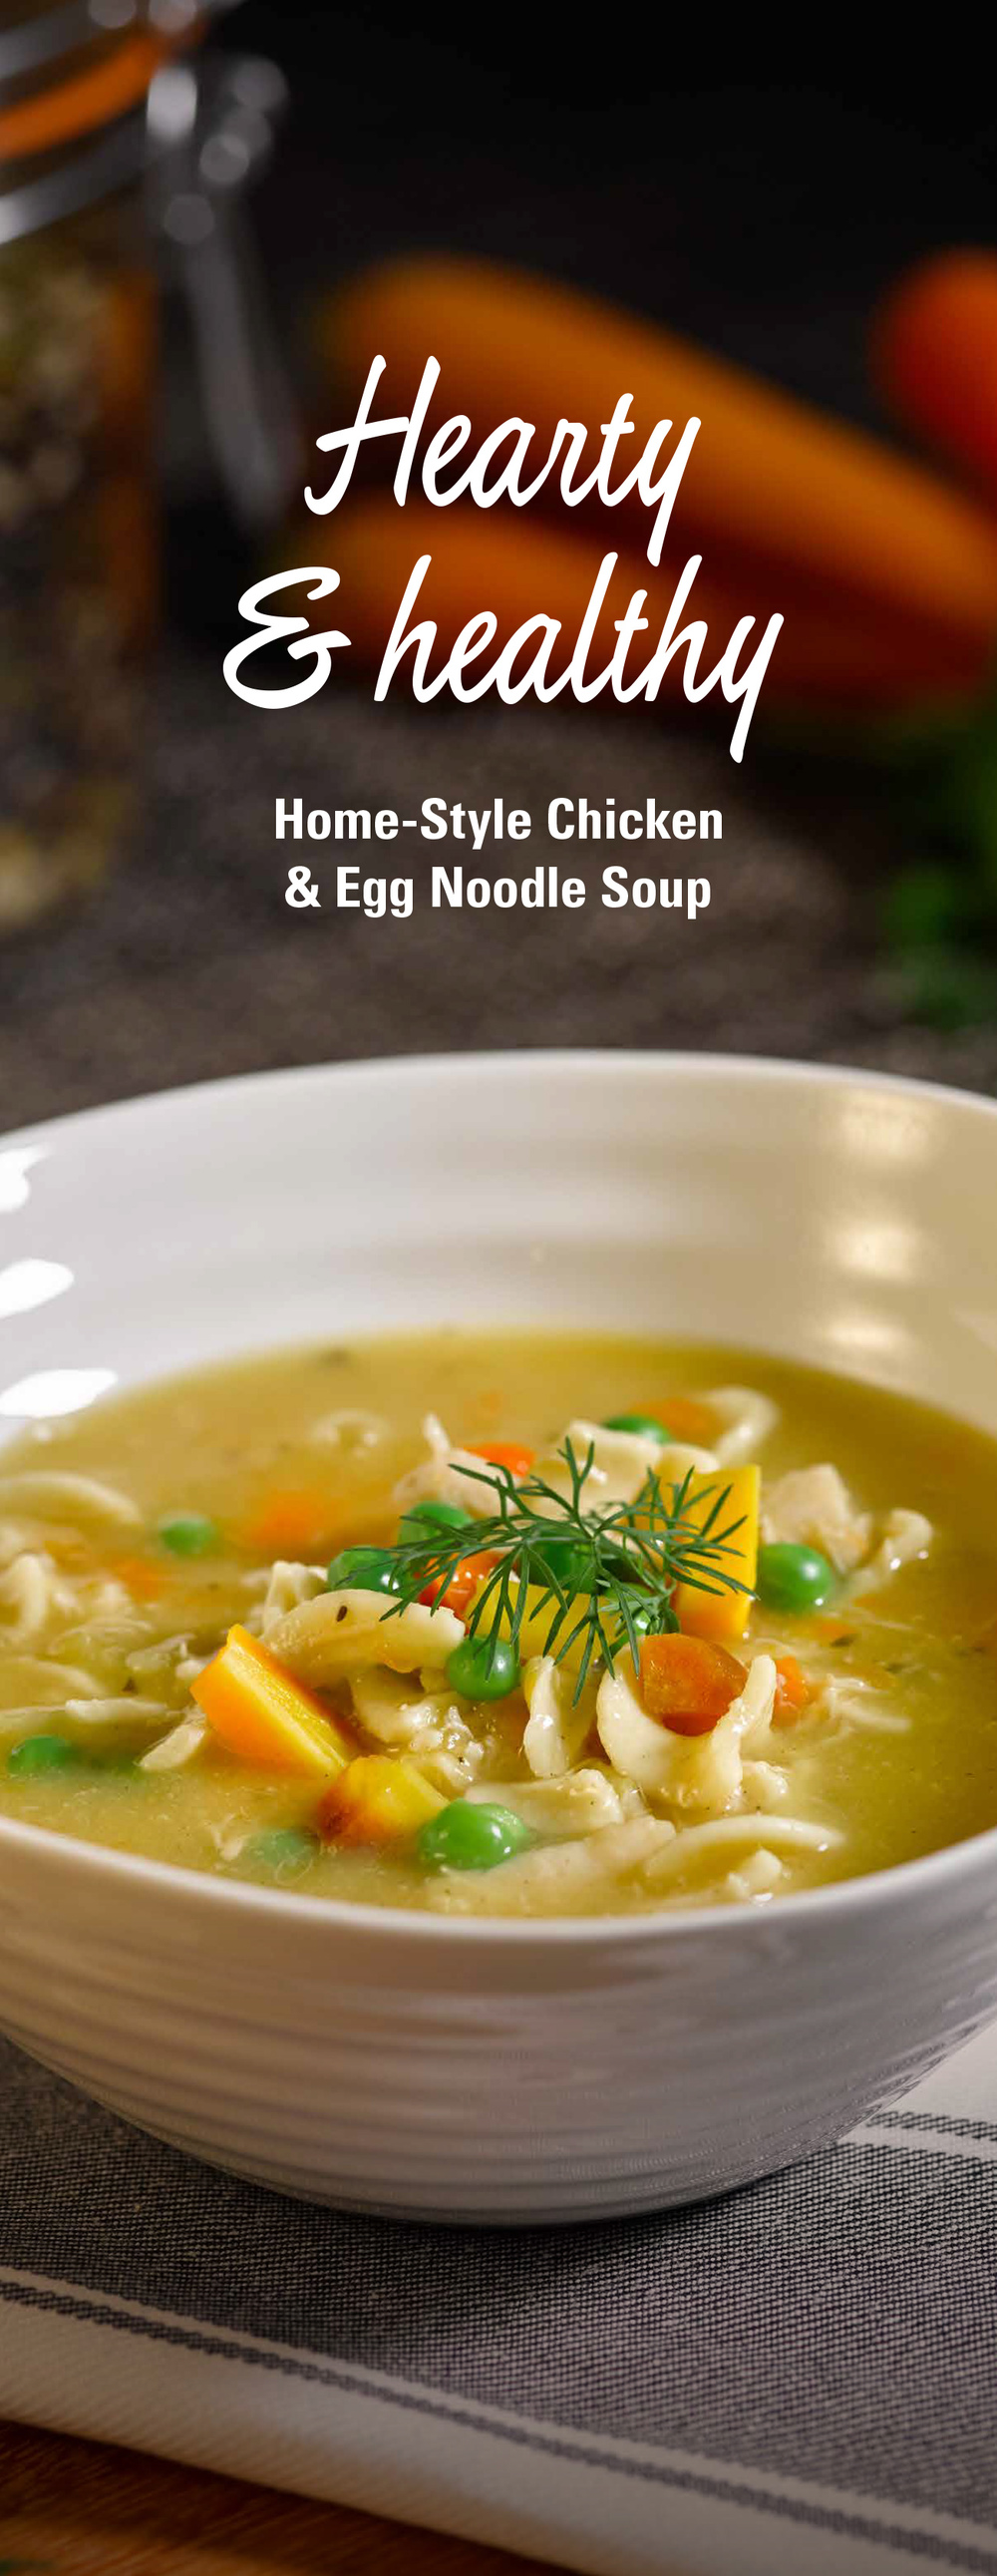 ge_2015_fall_slim_board_chicken_soup_v1.jpg